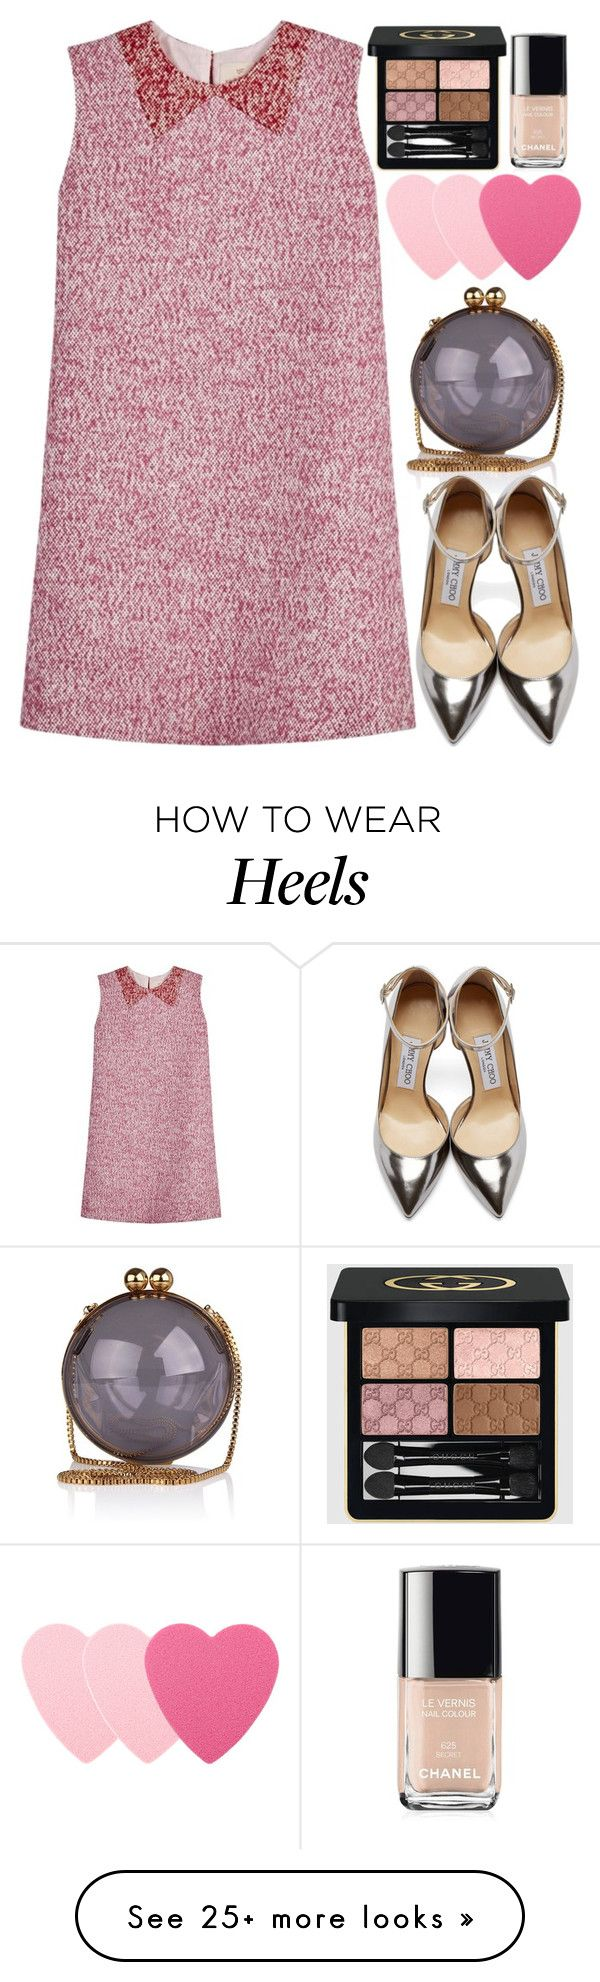 """HHRR"" by krizan on Polyvore featuring Chanel, Jimmy Choo, Sephora Collection, Gucci, women's clothing, women, female, woman, misses and juniors"